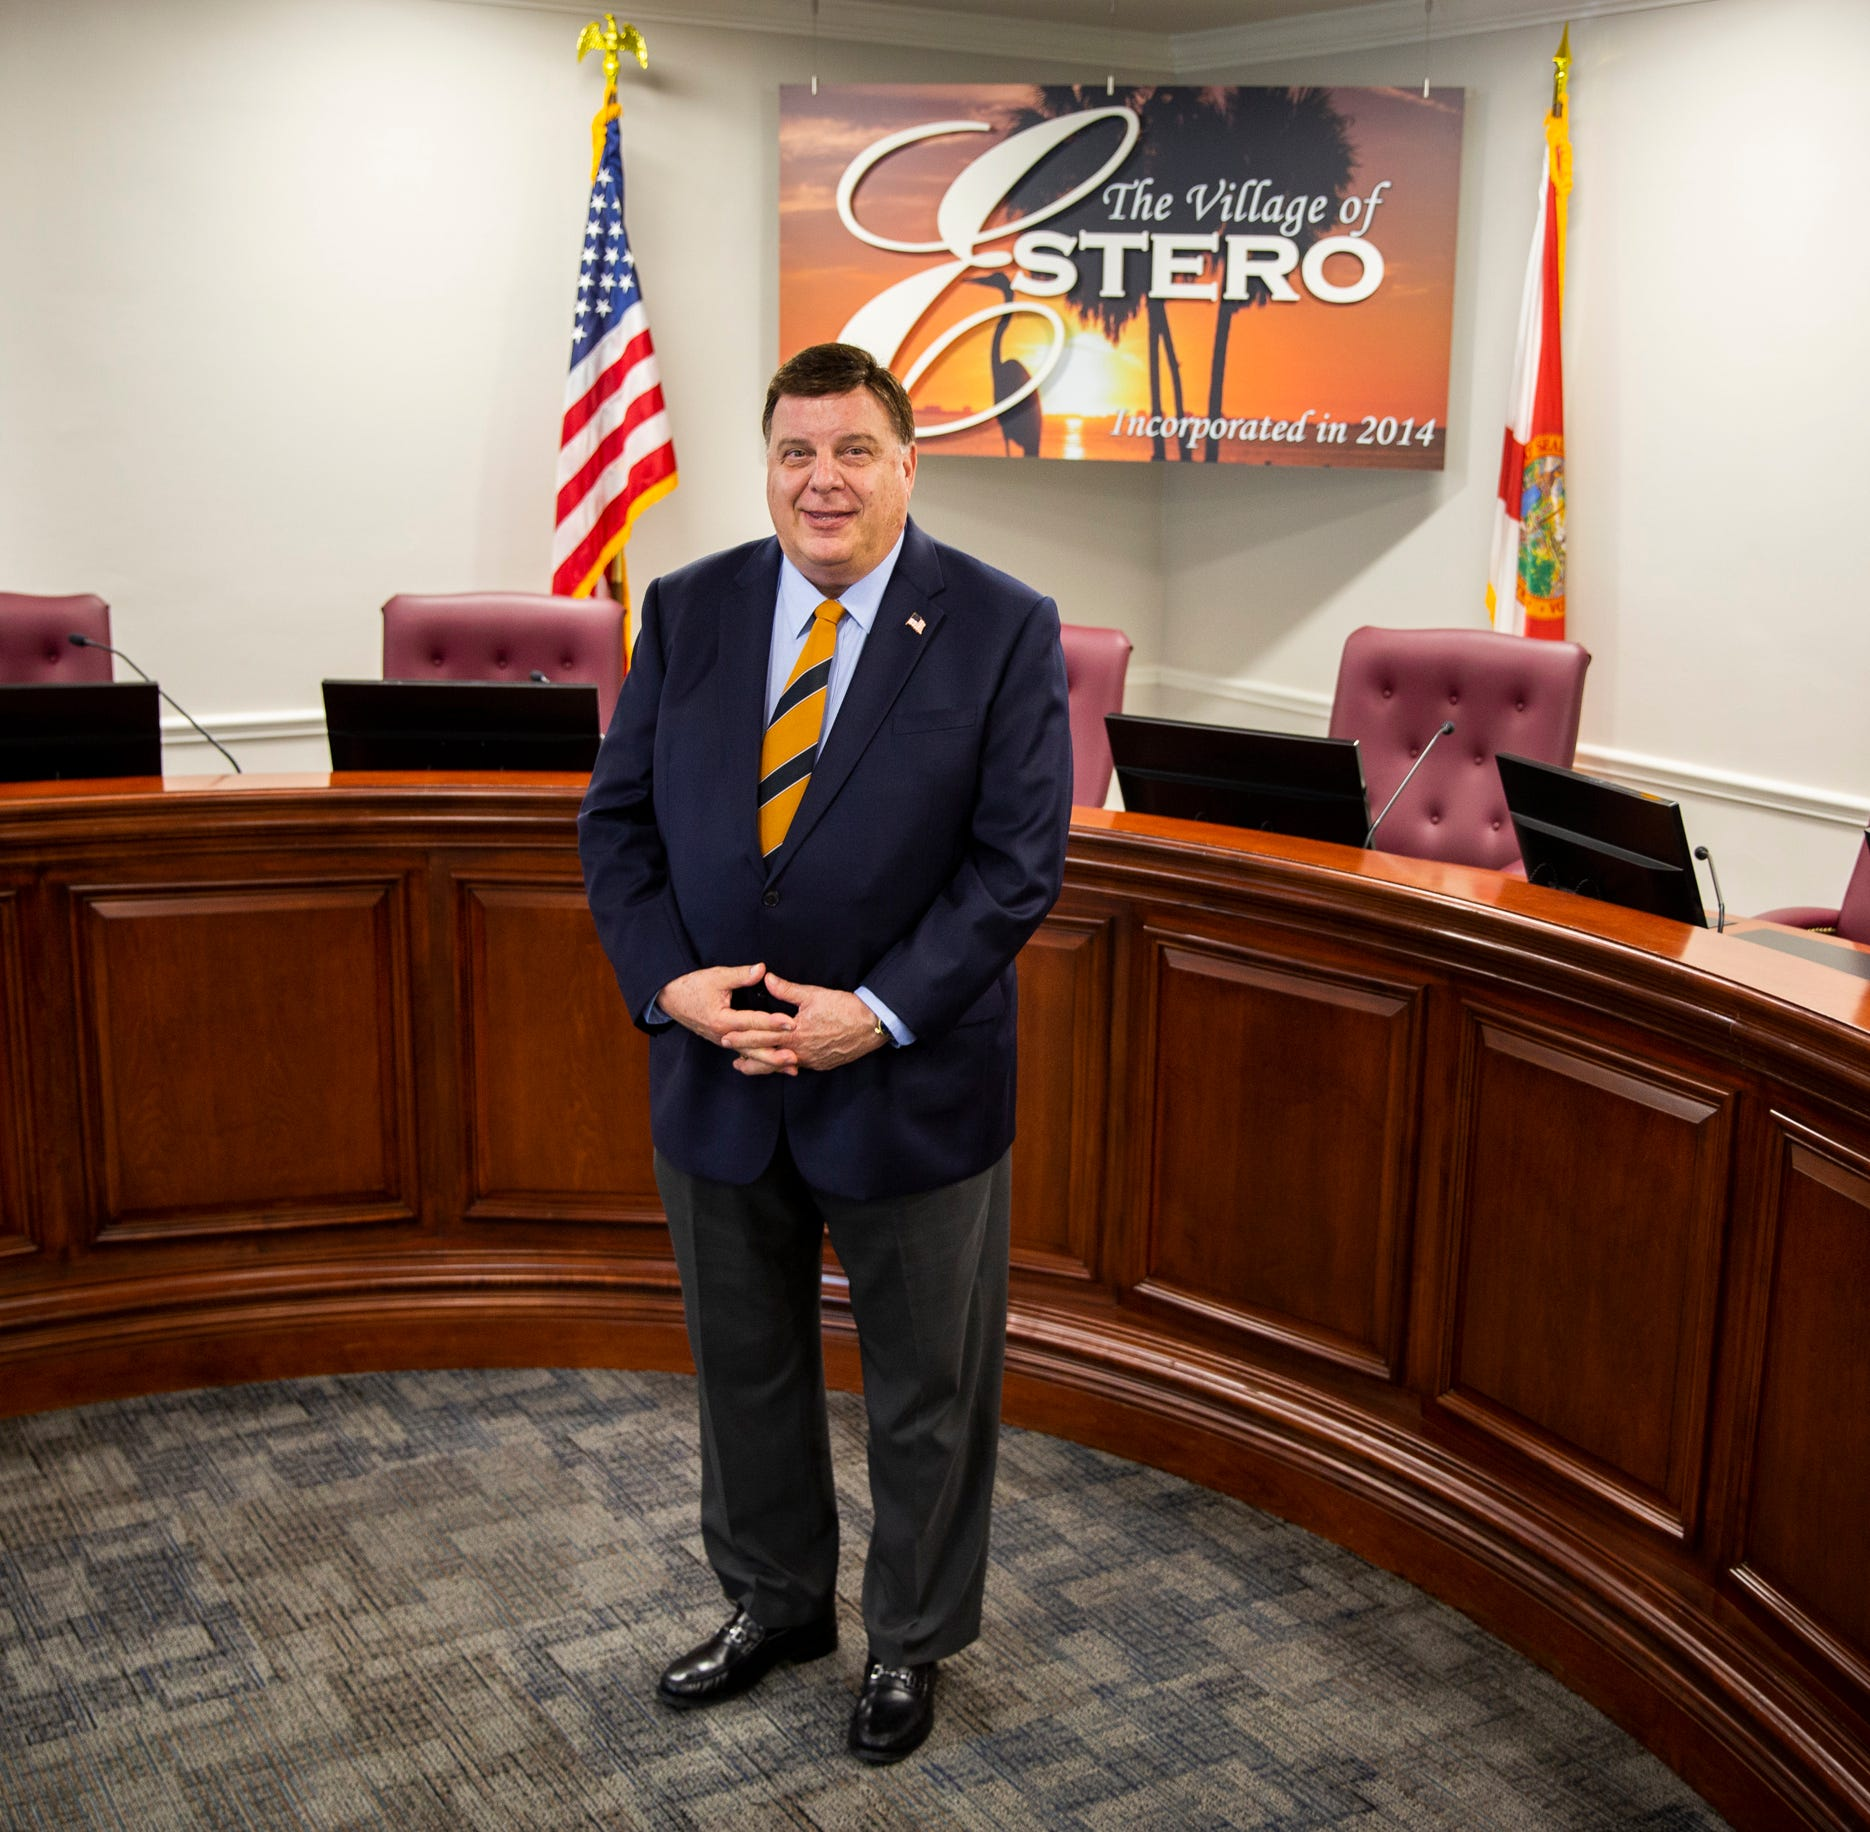 From UPS executive to mayor of Estero: Bill Ribble lands new gig after retirement